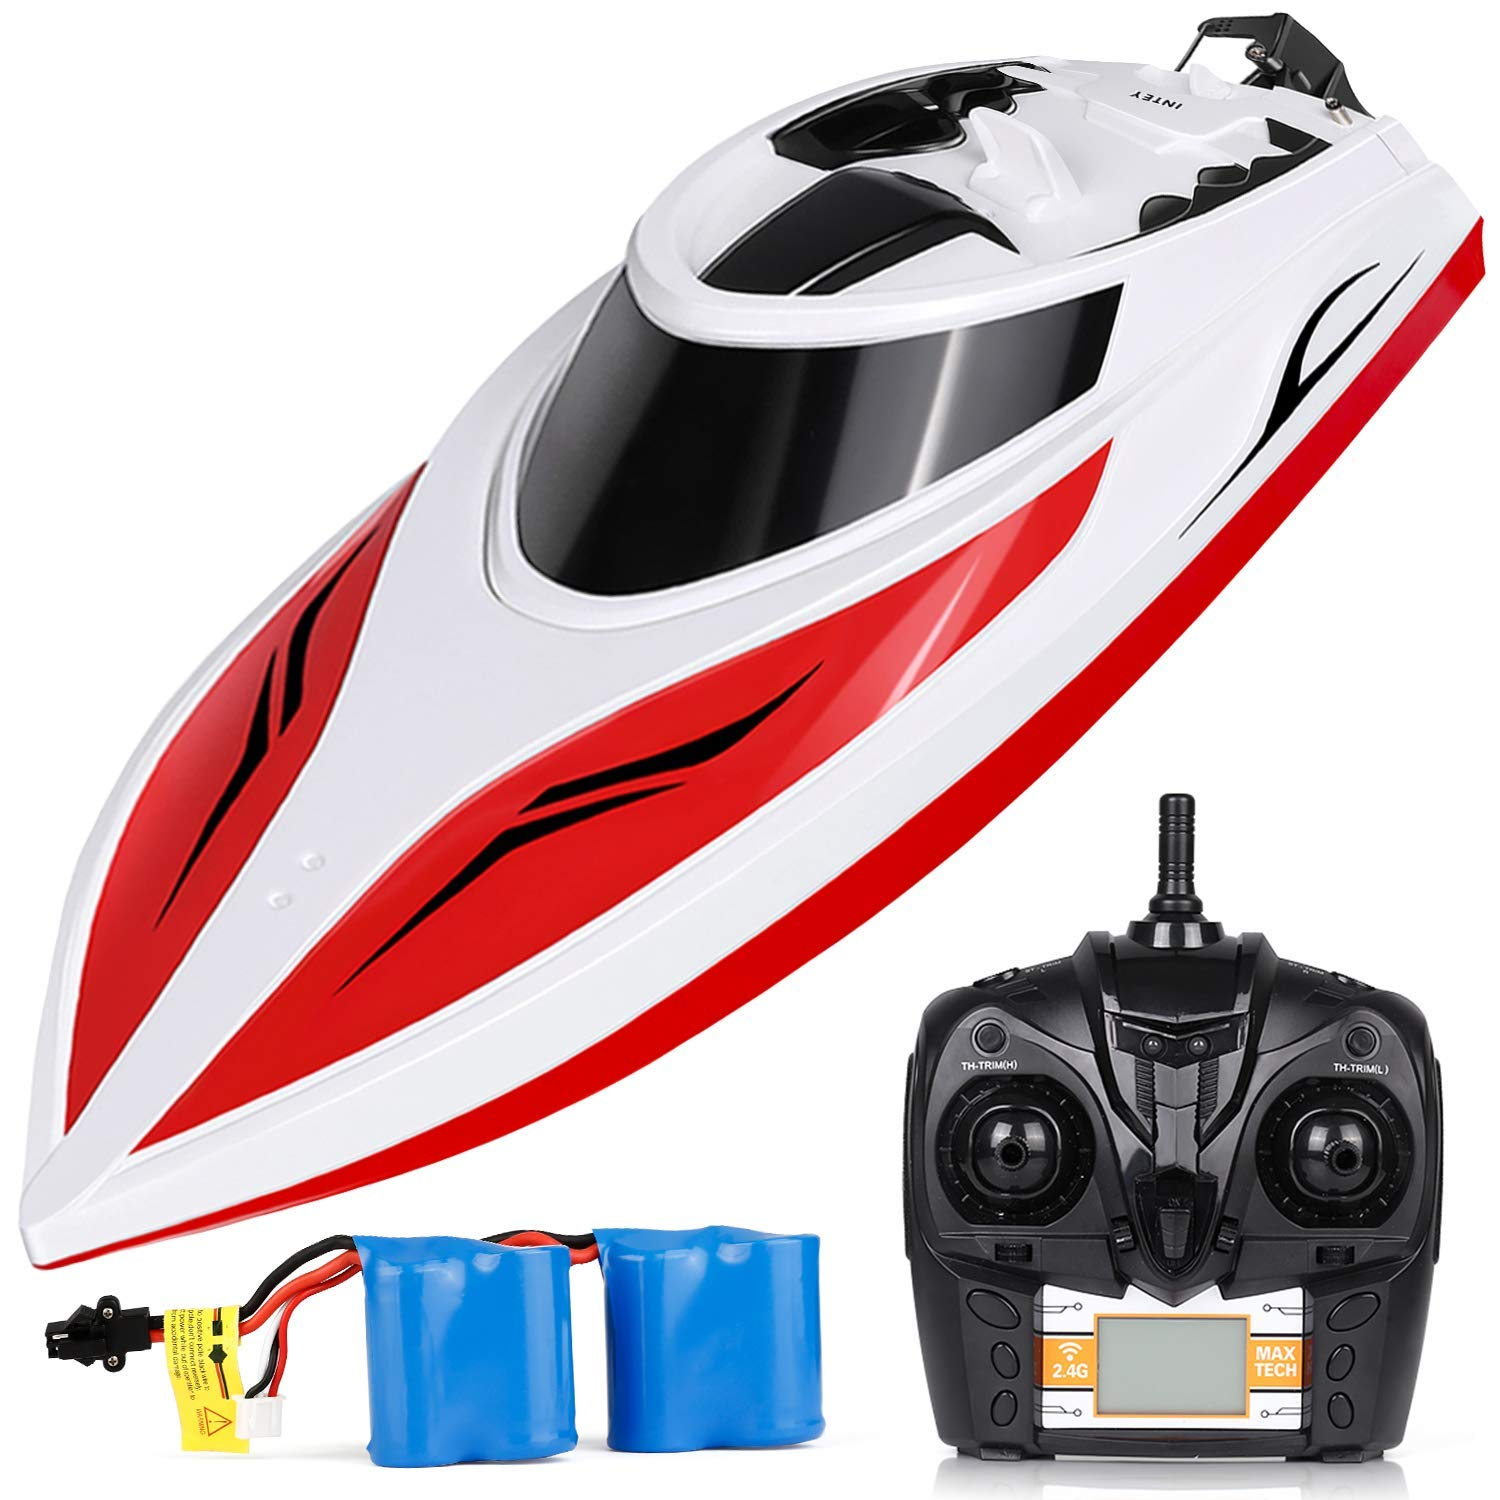 INTEY RC Boats for Kids & Adult - H102 20+ mph Remote Controlled RC Boat for Pool & Lakes, Speed Boat with 4 Channel & Capsize Recovery, a Must for Outdoor Adventure, Red